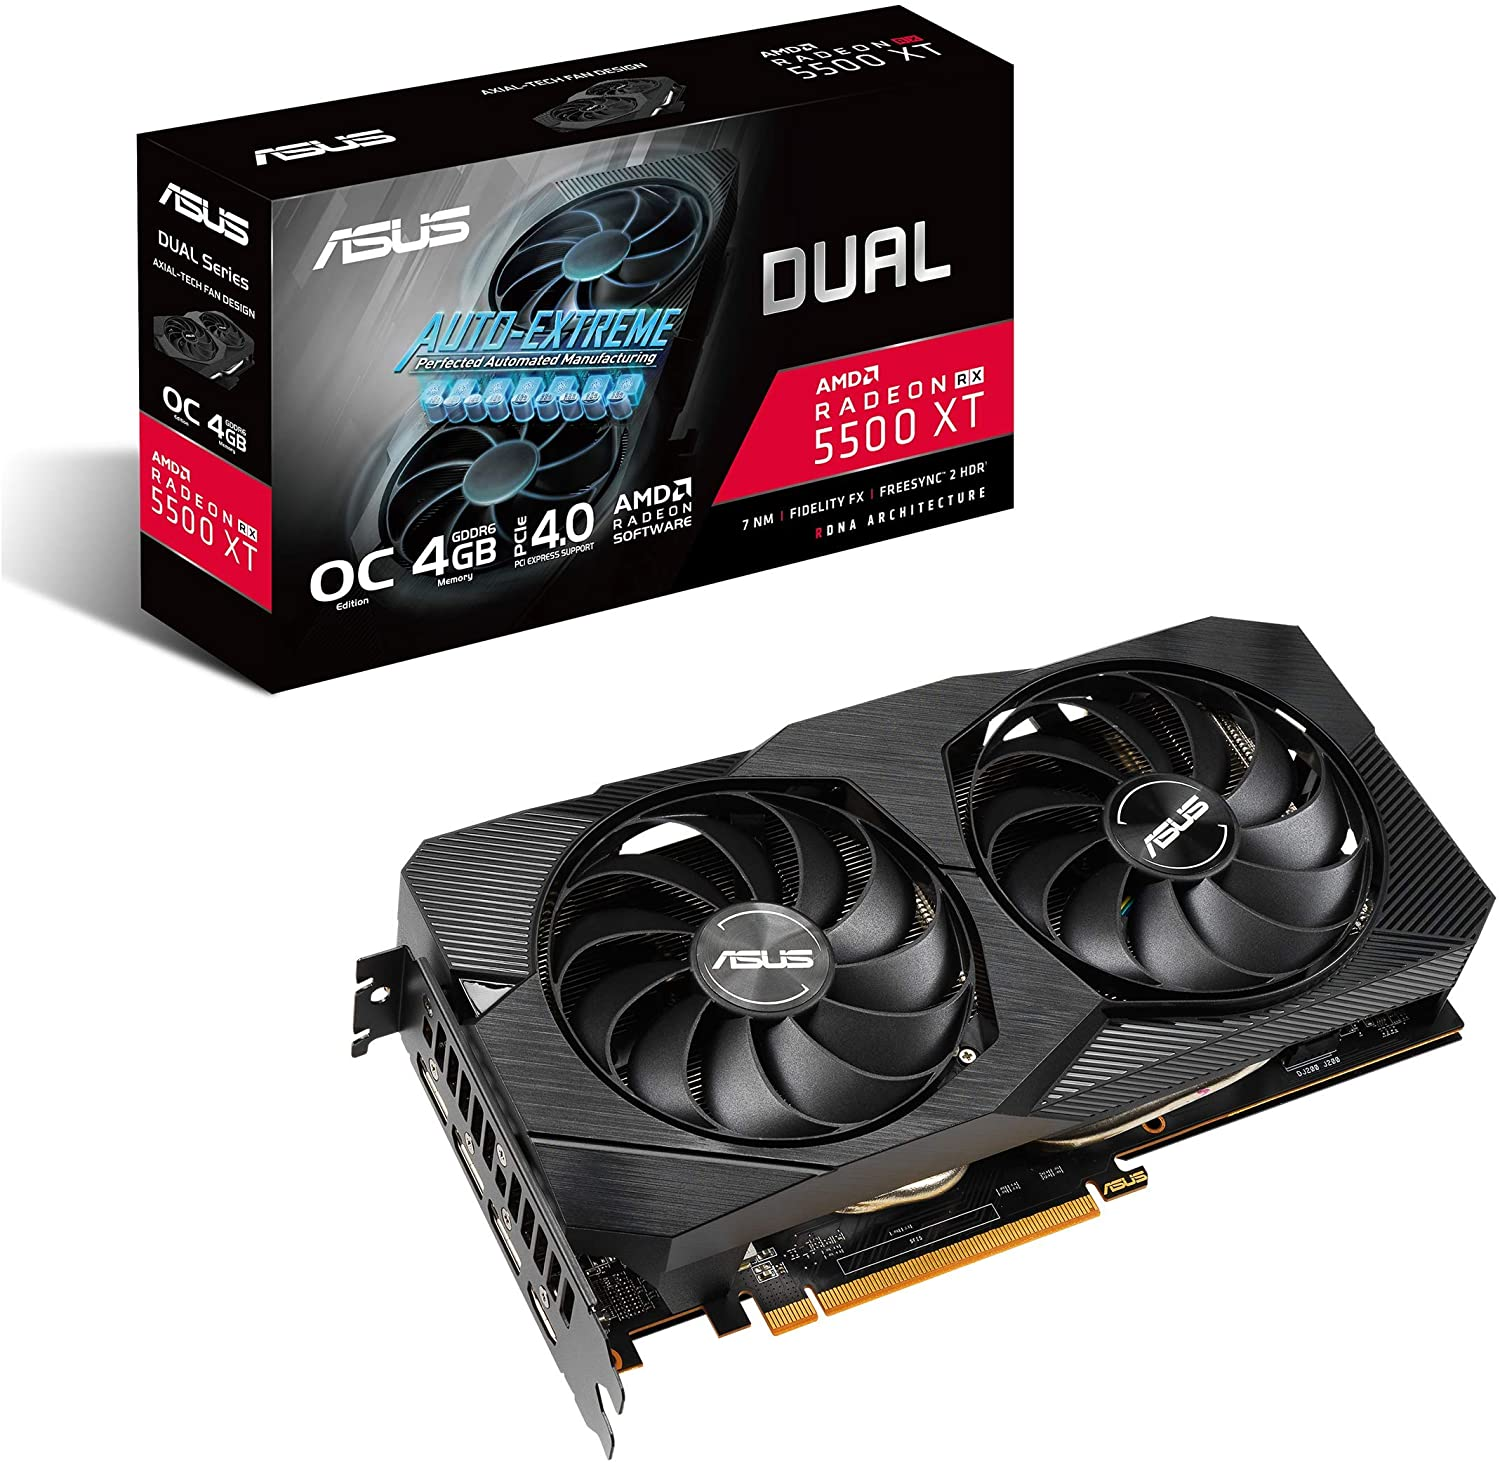 4 Graphics Card - Best $500 PC Build 2020